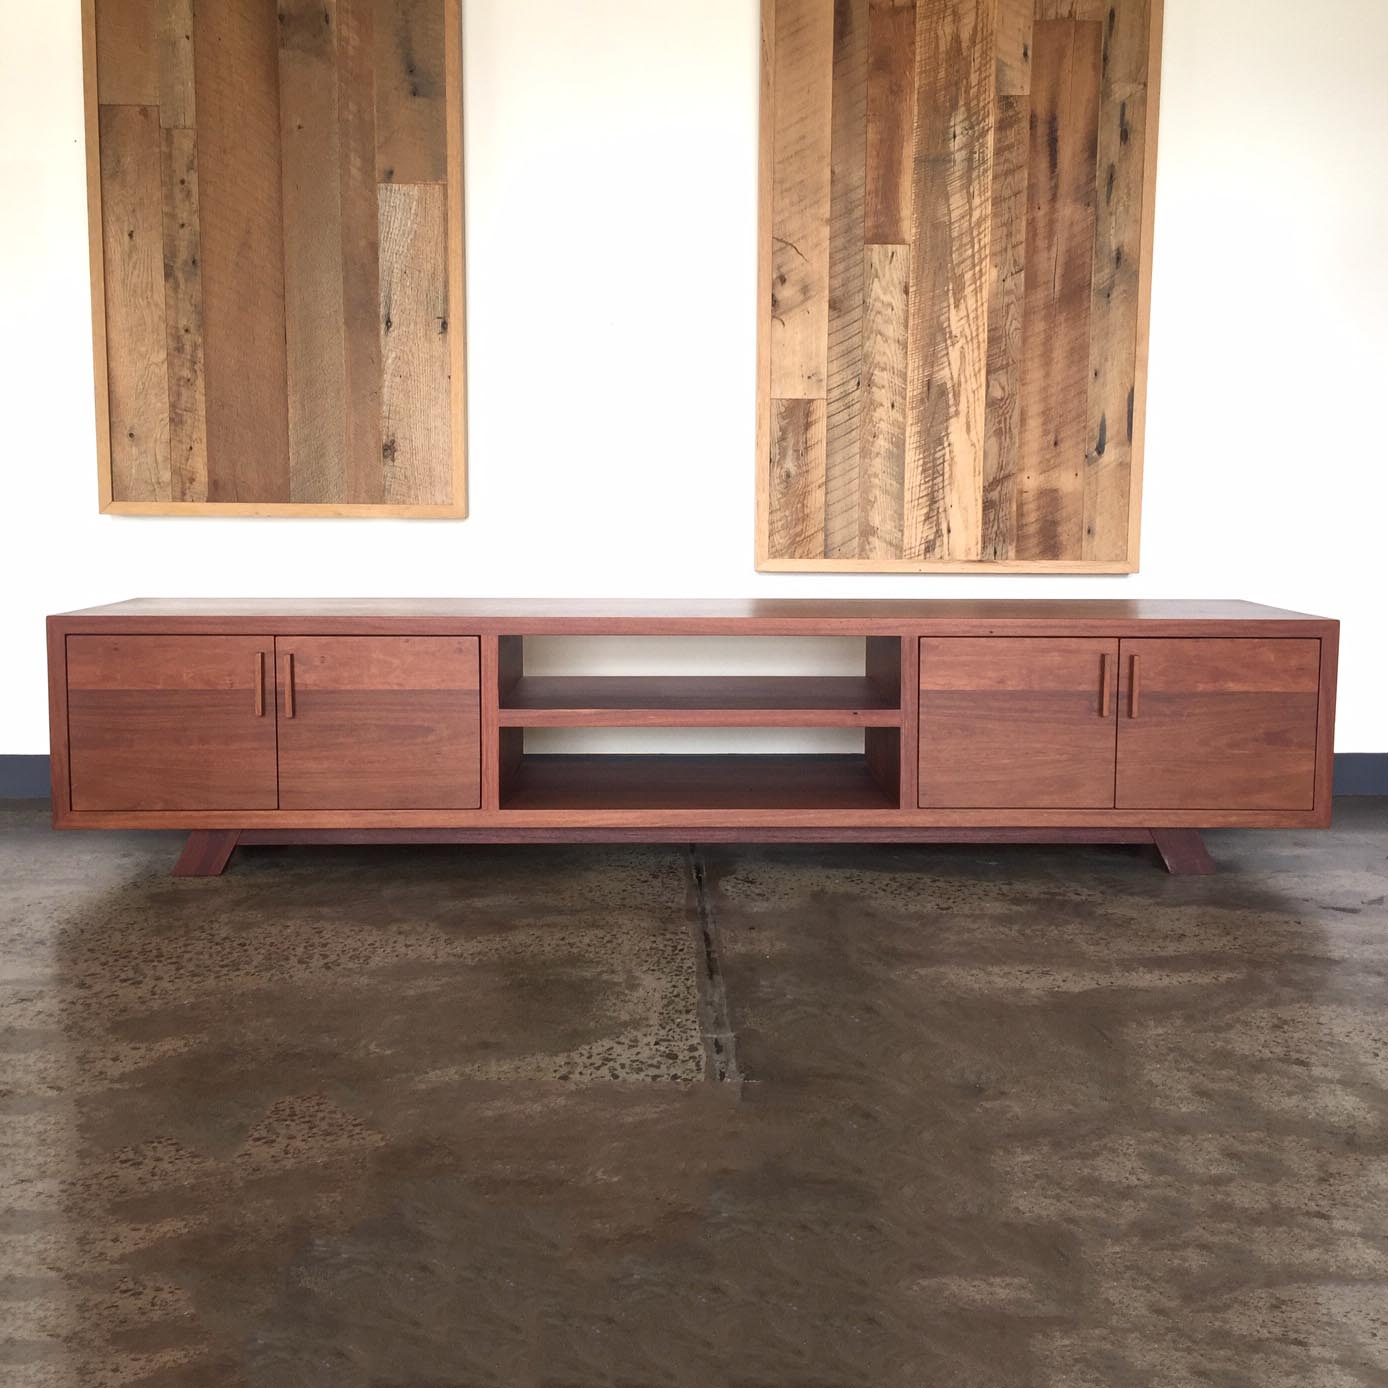 Miraculous Custom Recycled Timber Joinery Furniture Melbourne Home Interior And Landscaping Eliaenasavecom